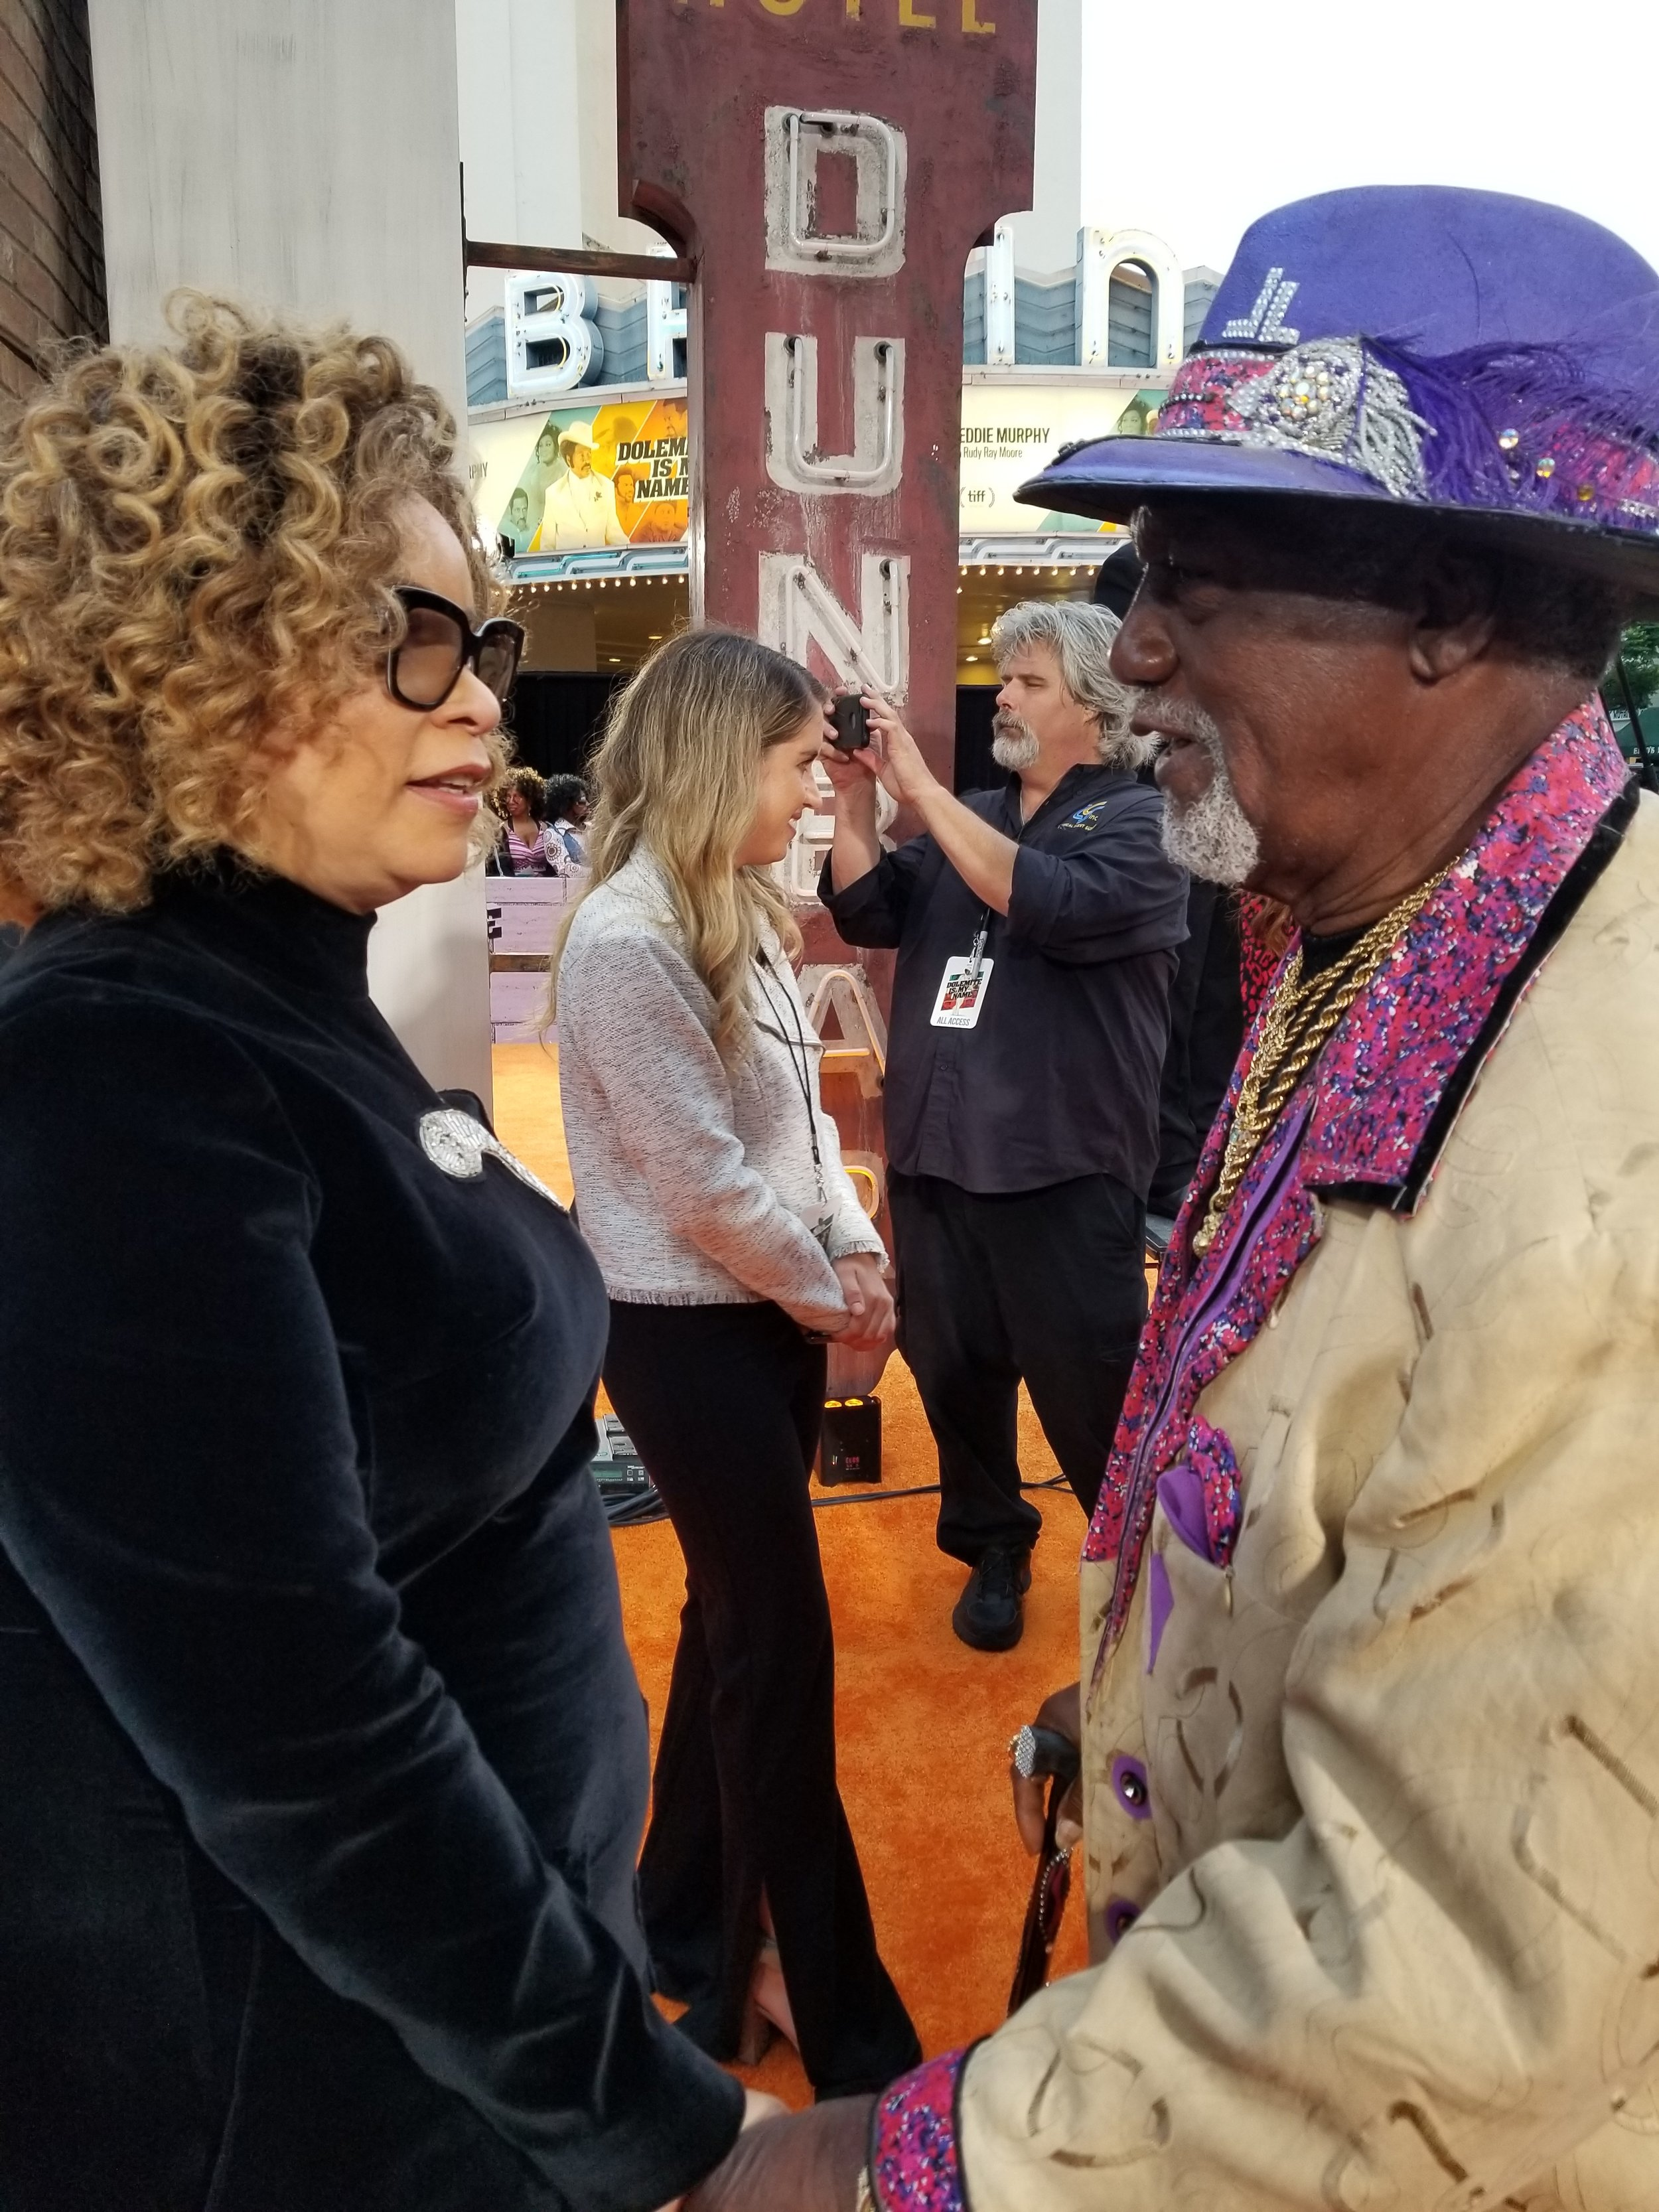 Oscar winner Ruth Carter and Jimmy Lynch discuss the costumes from the film. Lynch created many of the outfits from the original Rudy Ray Moore films.